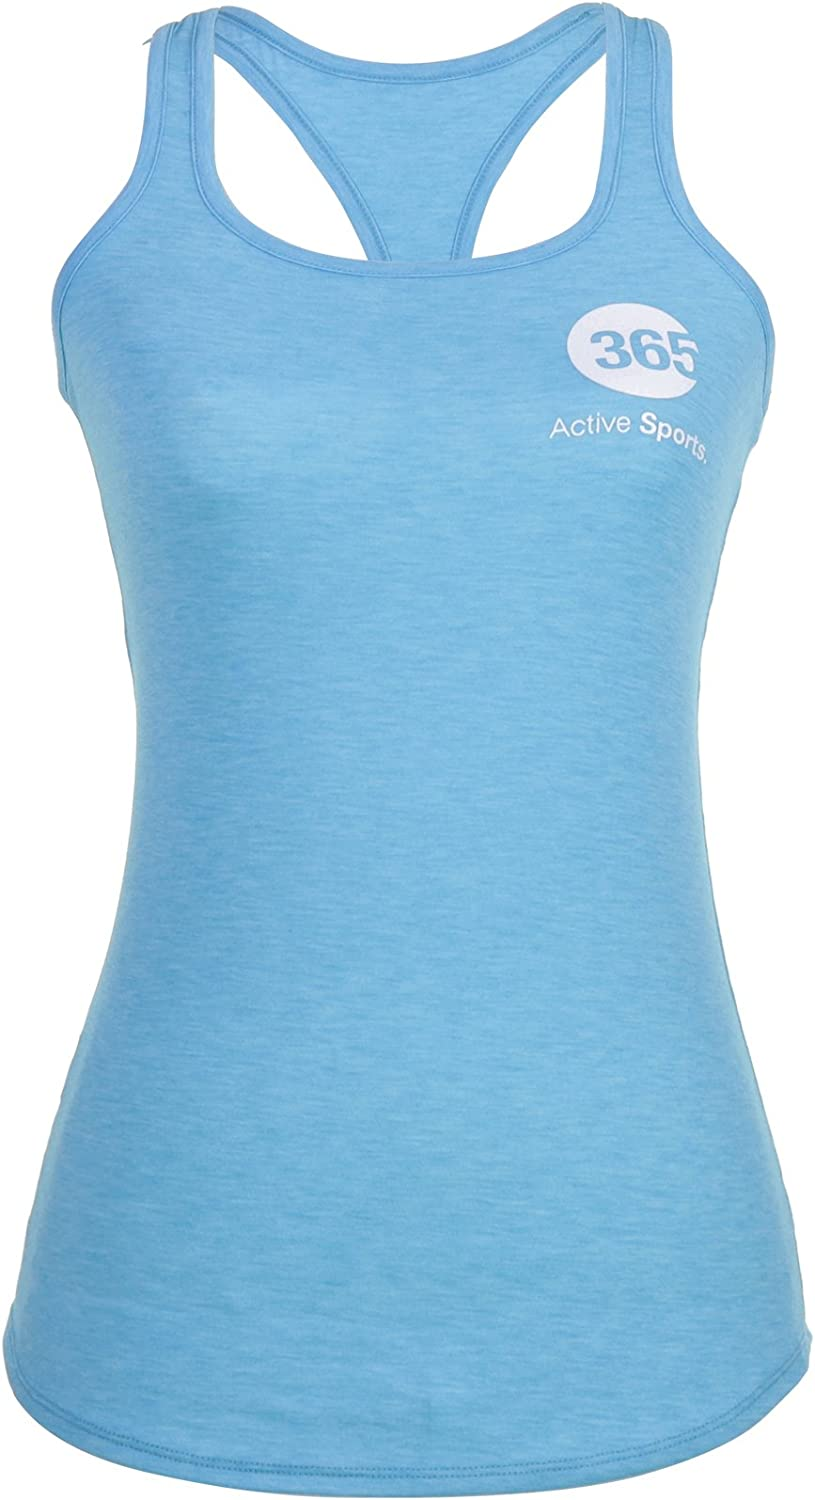 365 Active Wear Workout Tank Tops for Women- Premium Moisture Wicking Athletic Tanks to Control Sweat- Running, Yoga, Gym